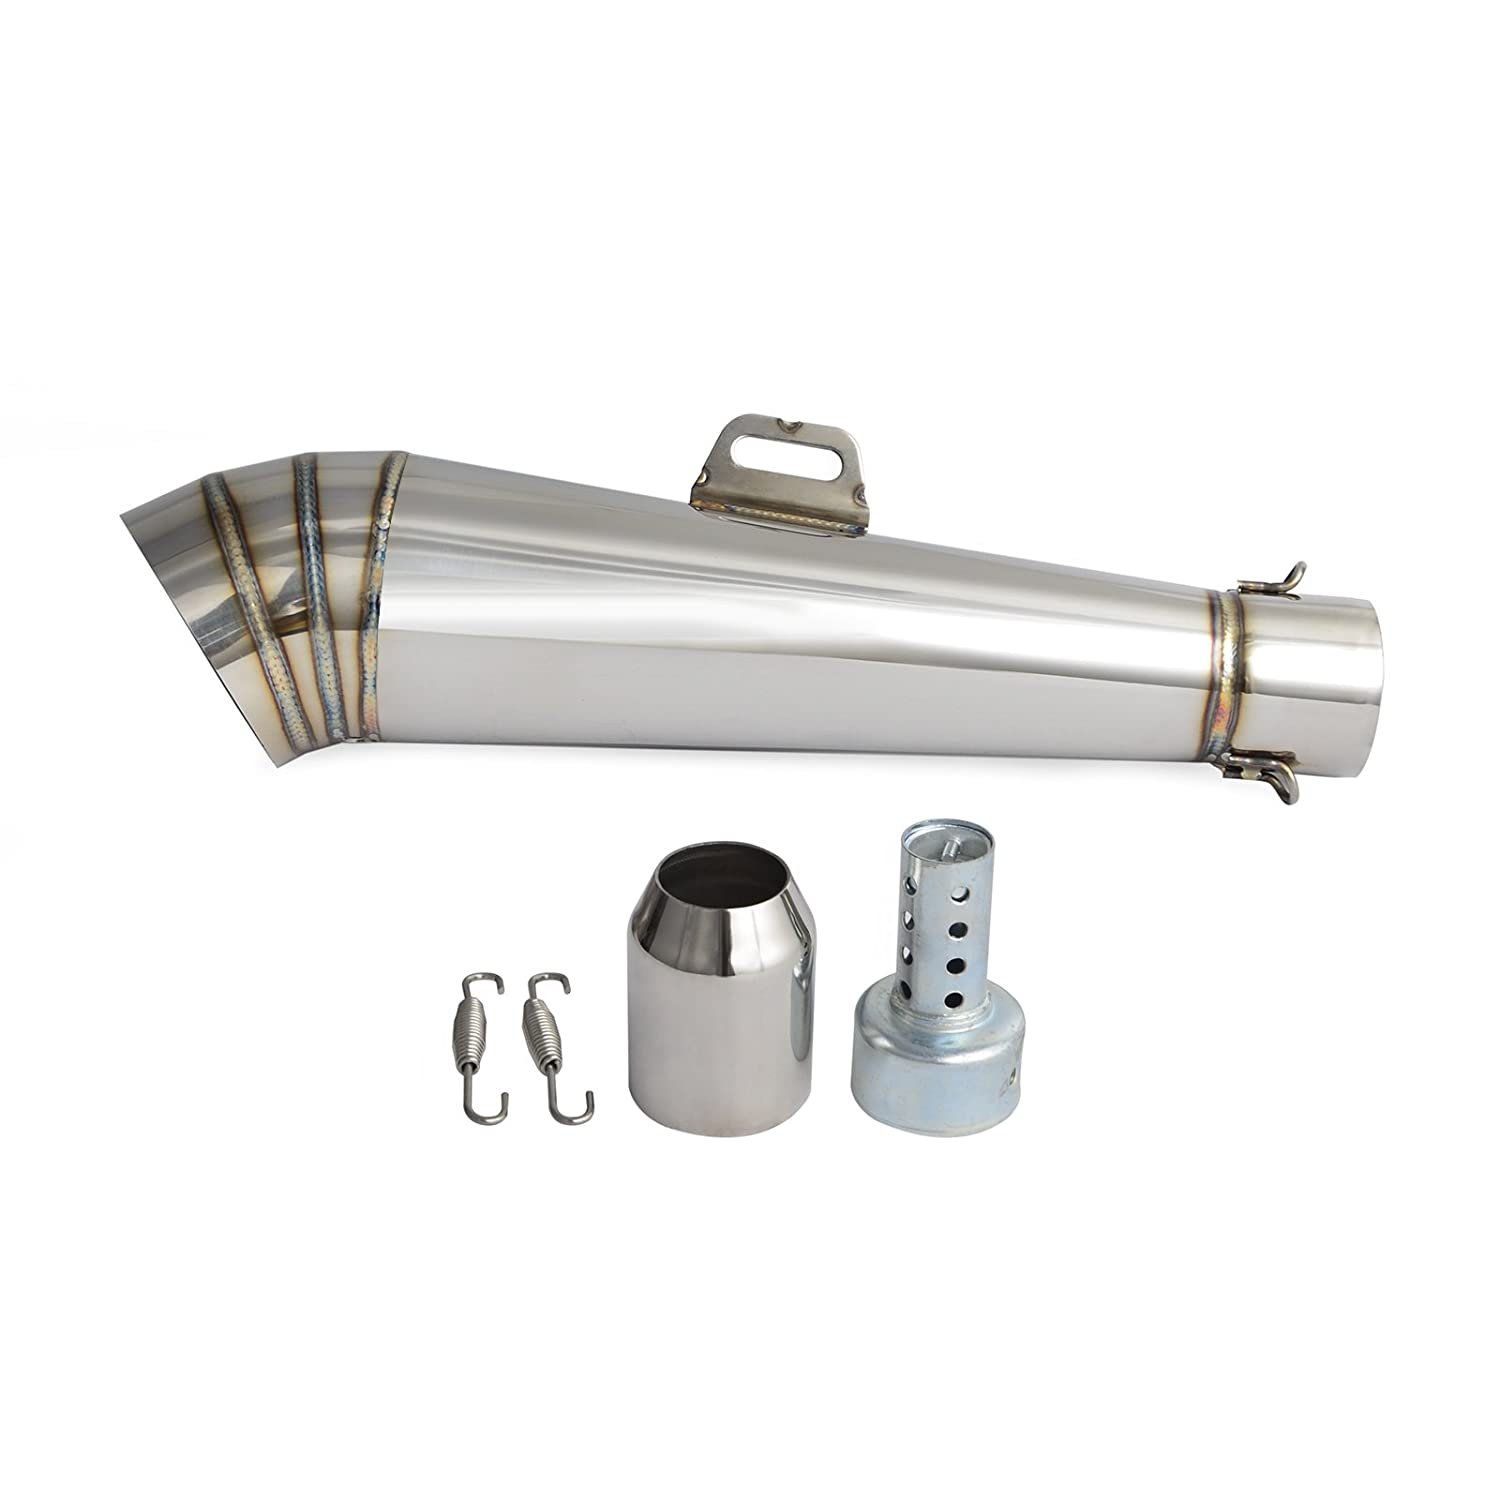 NICECNC Universal Stainelss Steel GP 38-51mm Slip-On Type Exhaust Muffler Pipe & Removable DB Killer for 125-1000CC Motorcycle & Scooter